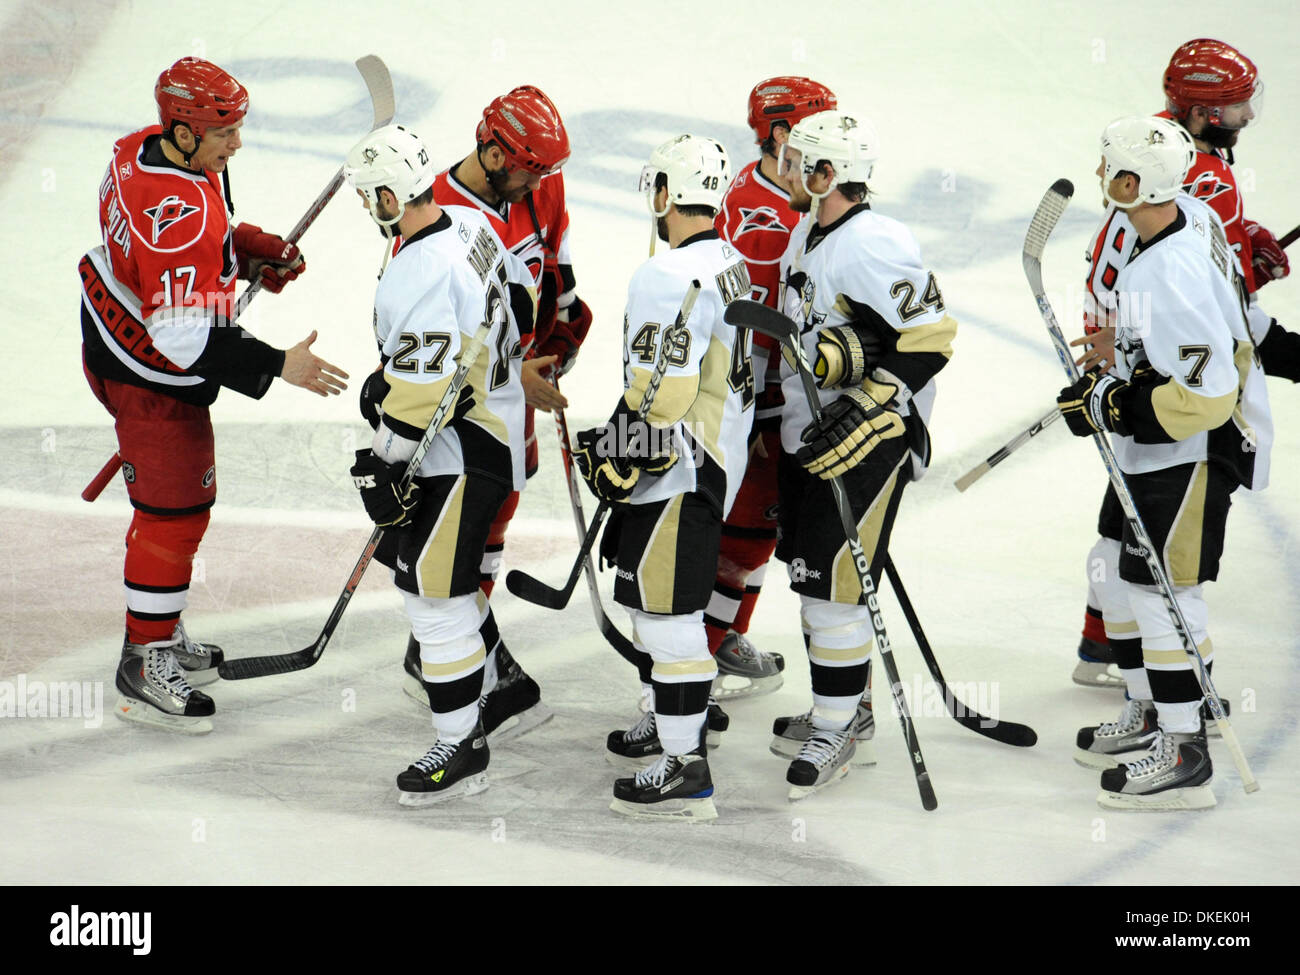 May 26 2009 Raleigh North Carolina Usa National Hockey League